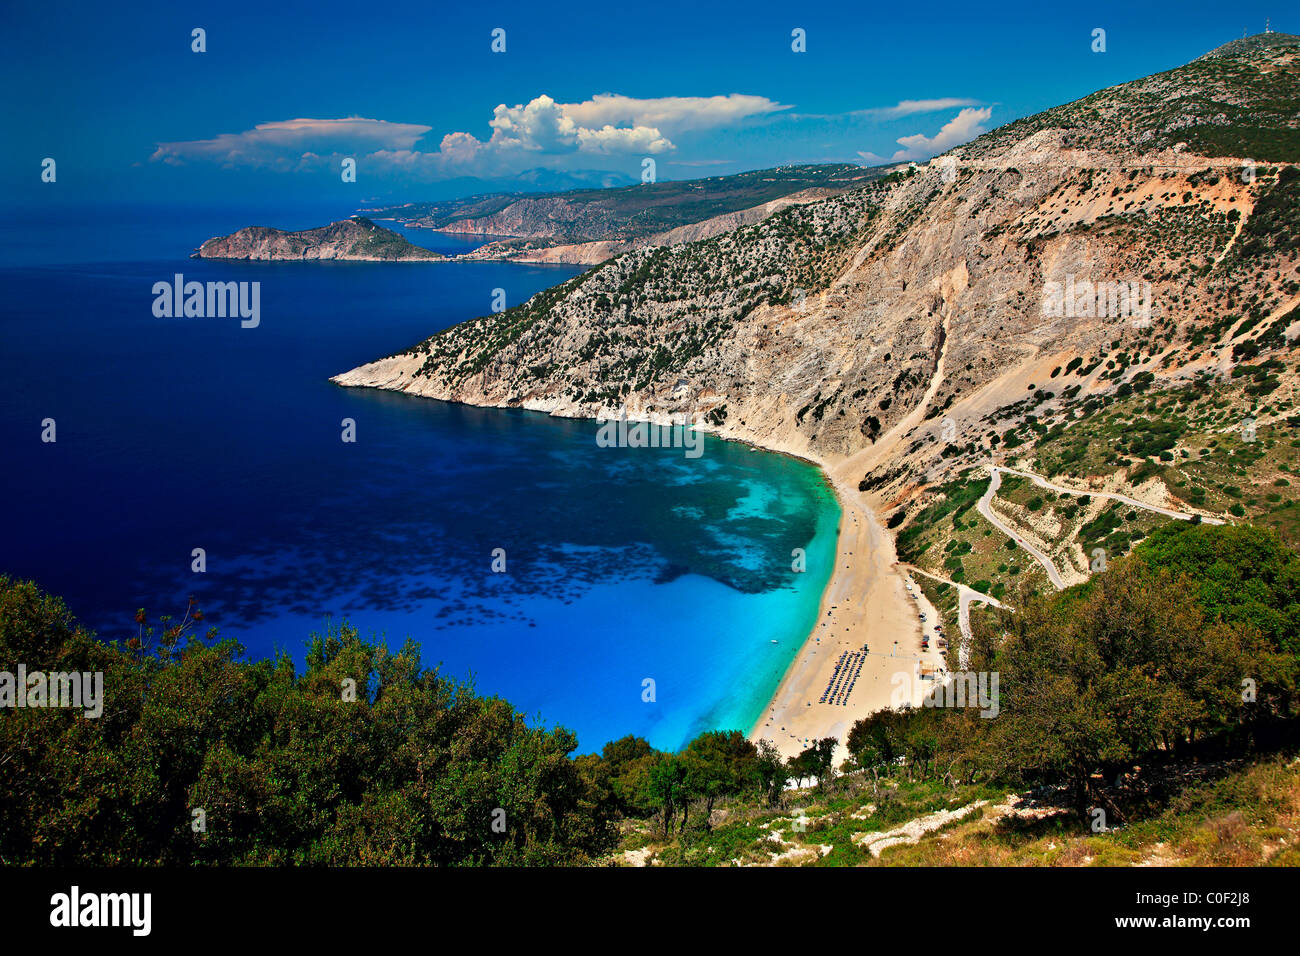 World famous Myrtos beach in Kefalonia island. In the background in that small peninsula you can see Assos village. - Stock Image